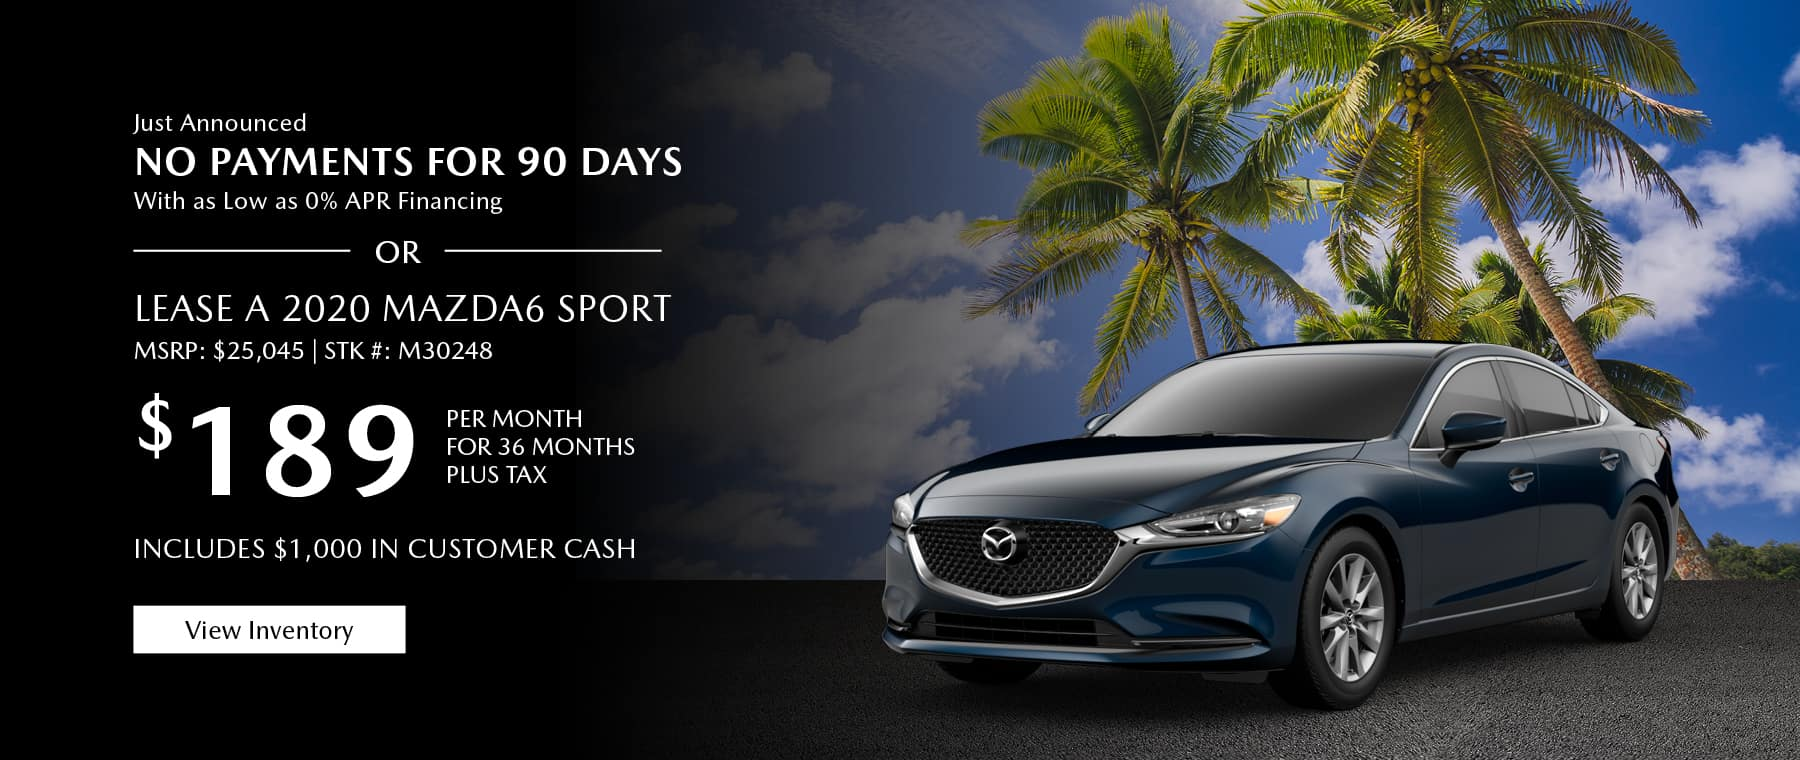 Just Announced, No payments for 90 days with as low as %0 APR financing, or lease the 2020 Mazda6 for $189 per month, plus tax. Includes $1,000 in customer cash. View inventory.